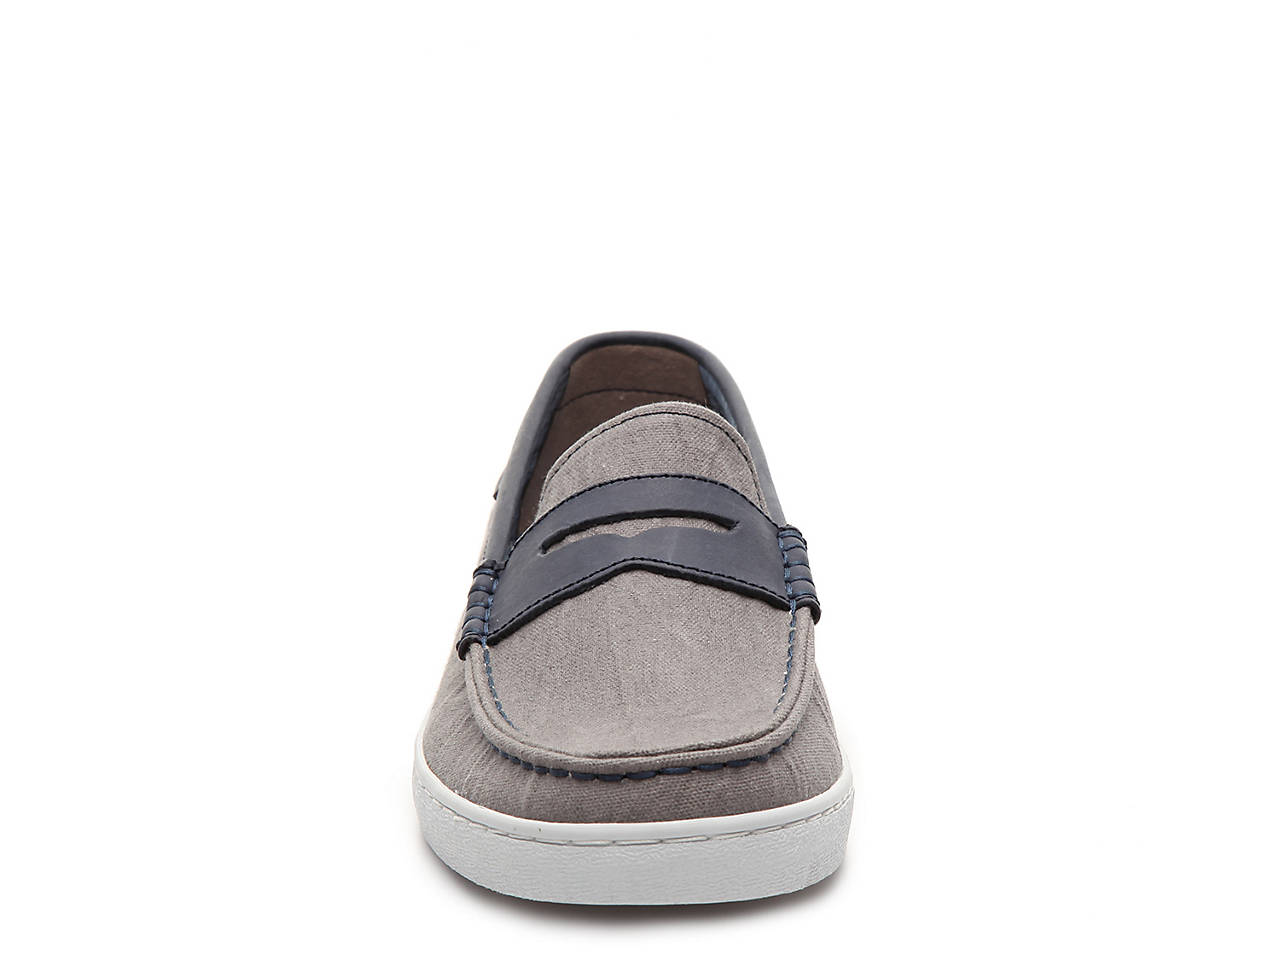 36418703a5a Cole Haan Pinch Weekender Penny Loafer Men s Shoes